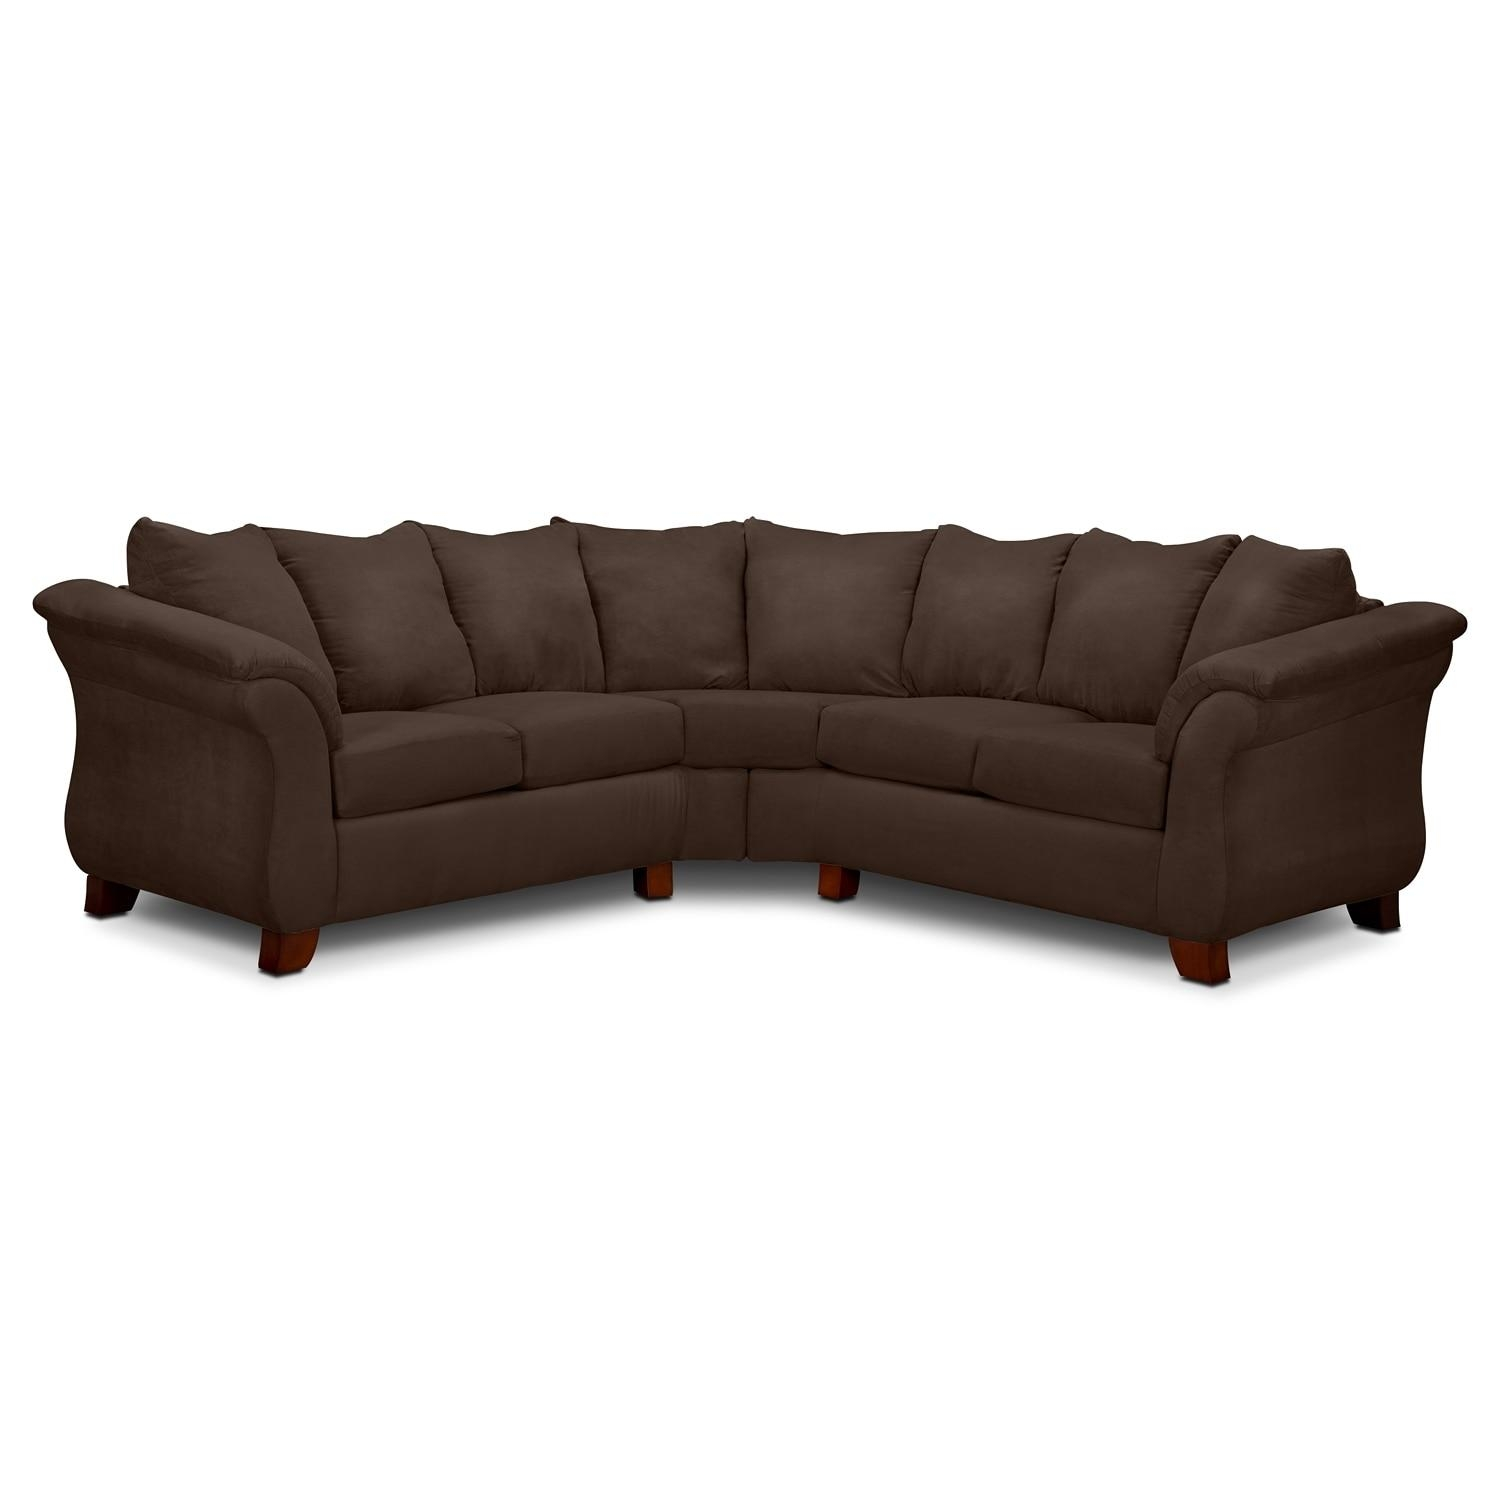 Adrian 2 Piece Sectional – Chocolate | American Signature Furniture Throughout Serta Sectional (View 14 of 20)